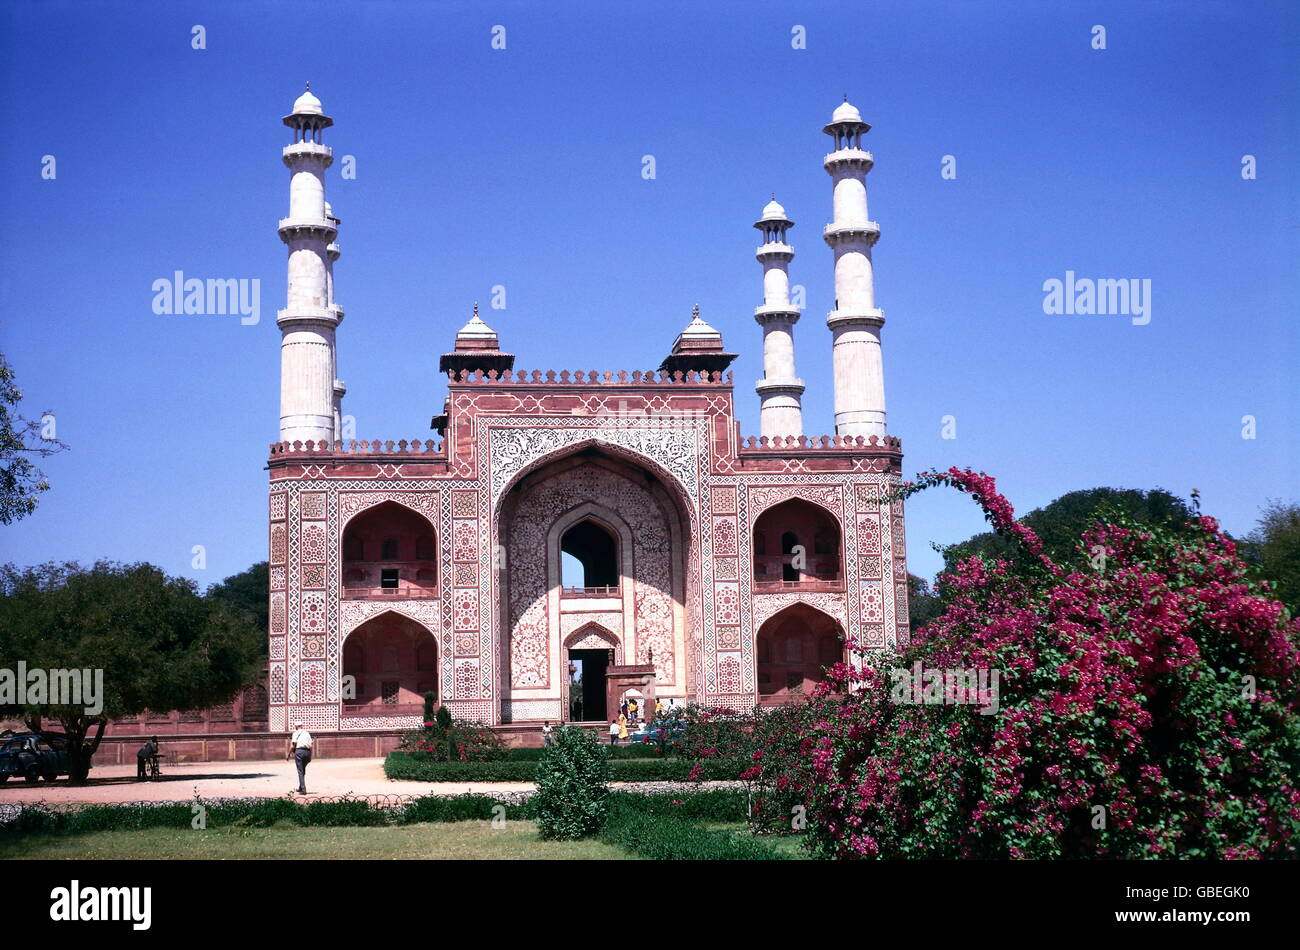 geography / travel, India, Agra, Tomb of Akbar, circa 1980s, Additional-Rights-Clearences-NA - Stock Image